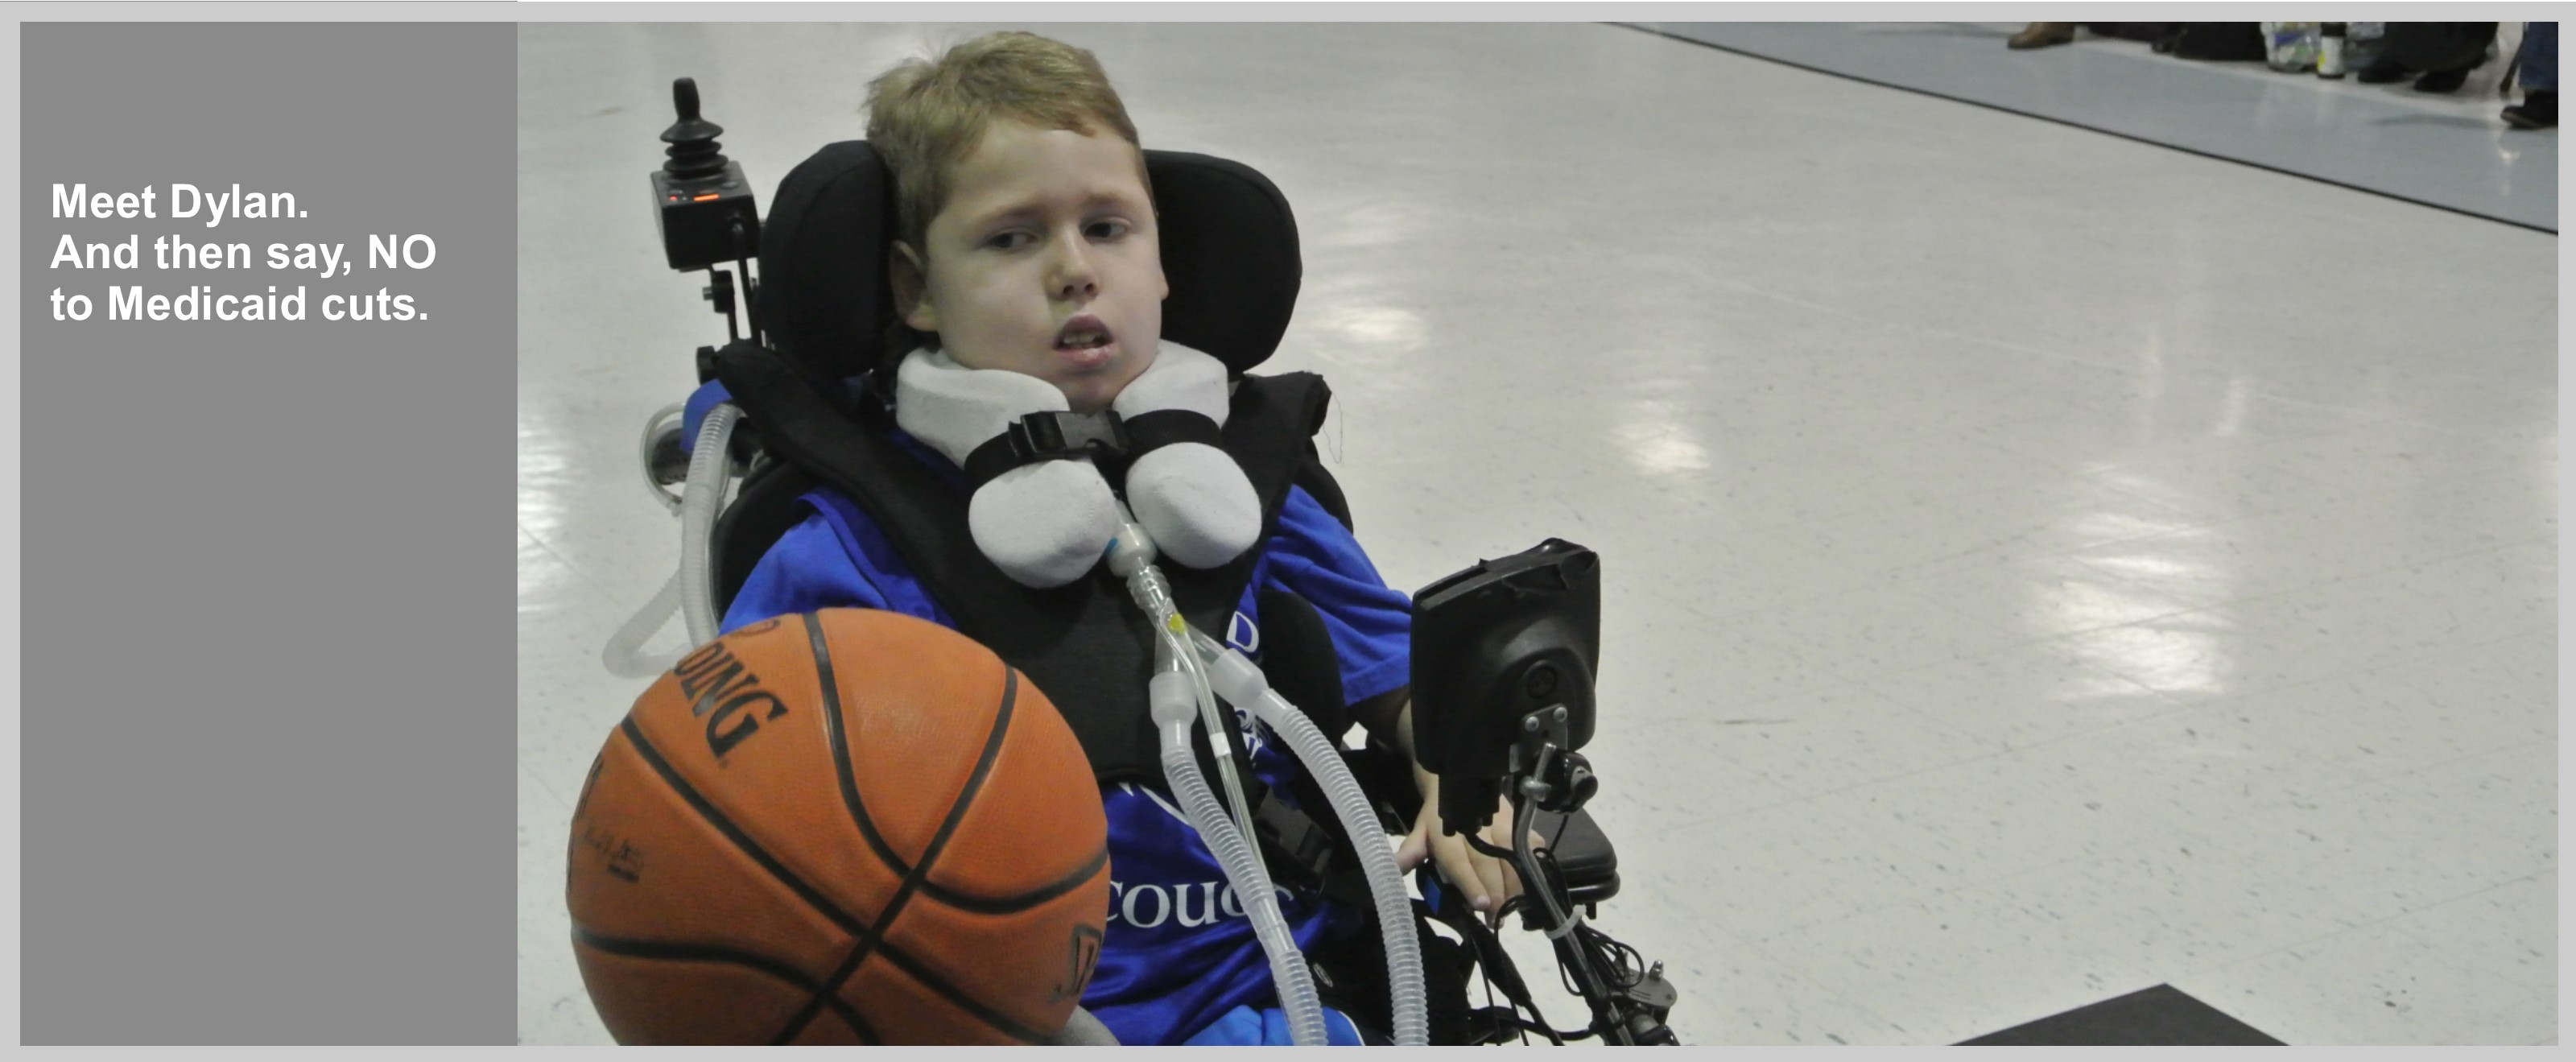 Meet Dylan. And then say, NO to Medicaid cuts. Image of Dylan playing wheelchair basketball.